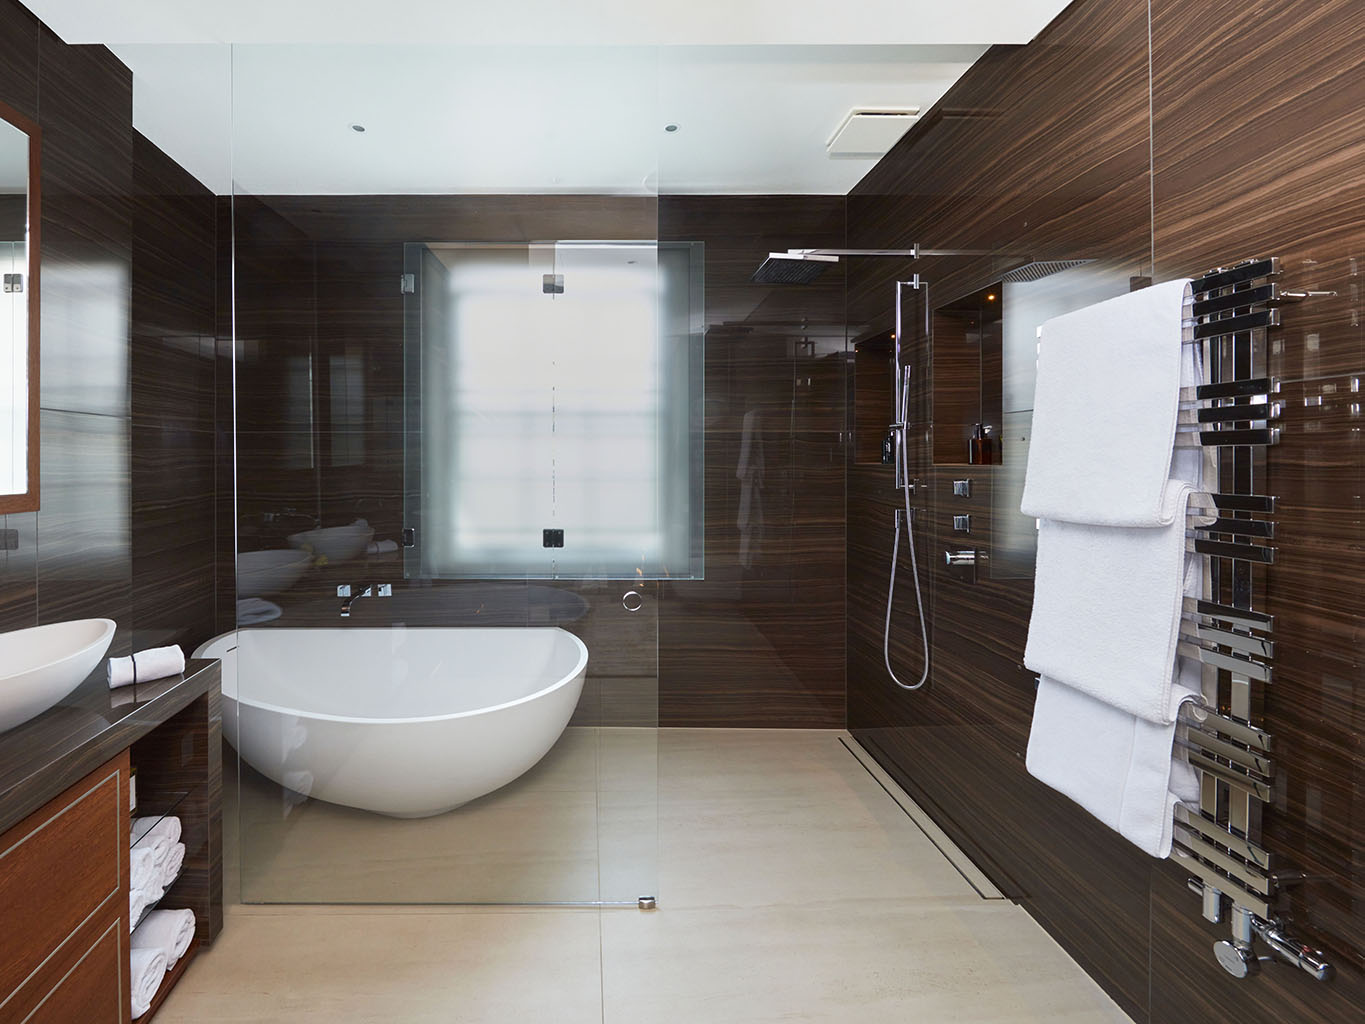 Wide angle ensuite